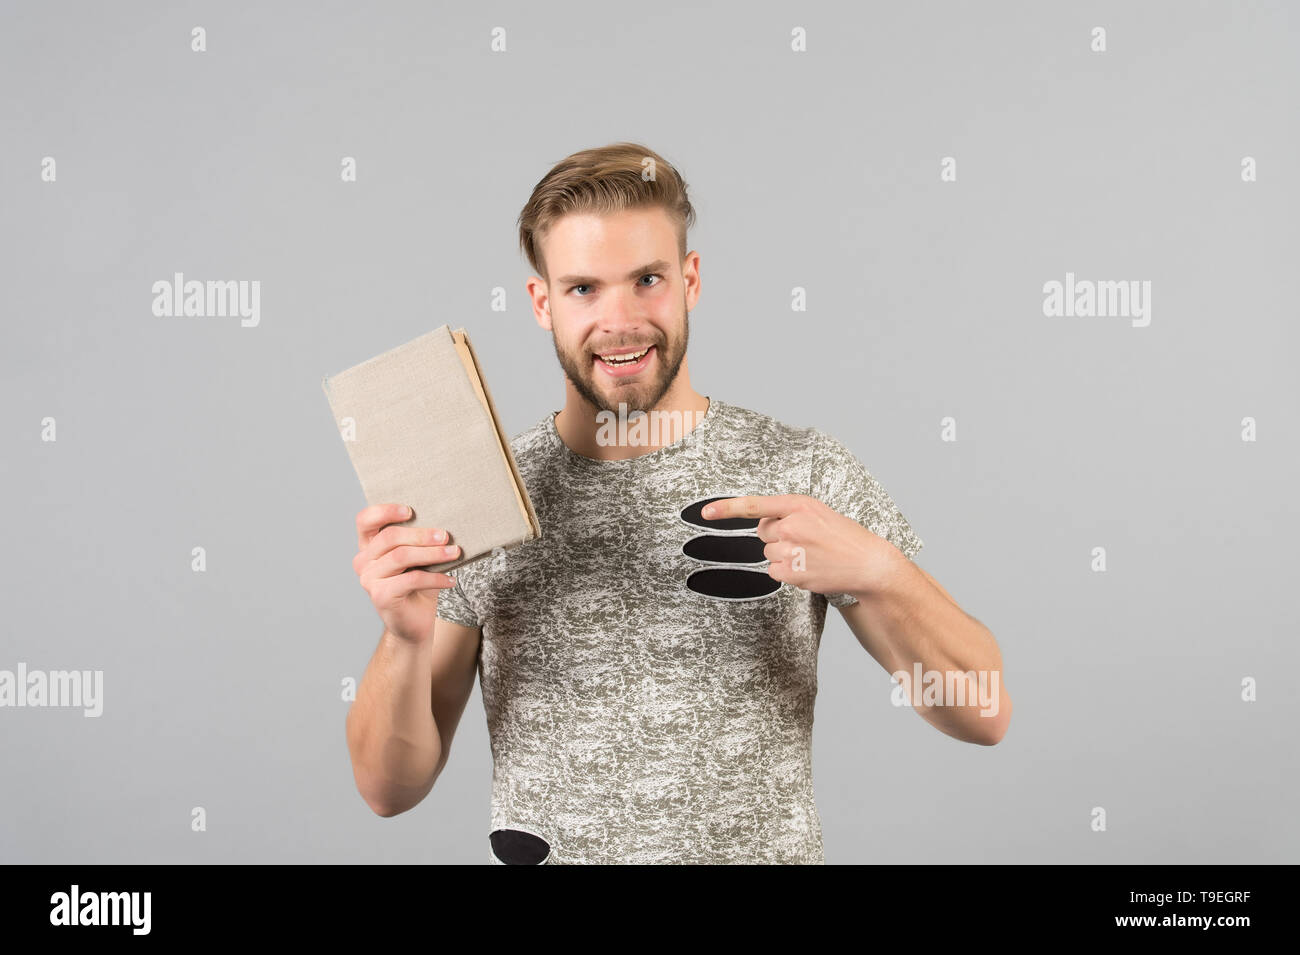 Man bearded unshaven guy in stylish shirt pointing at book. Man smiling face recommends book, grey background. Literature recommendation concept. Man  - Stock Image